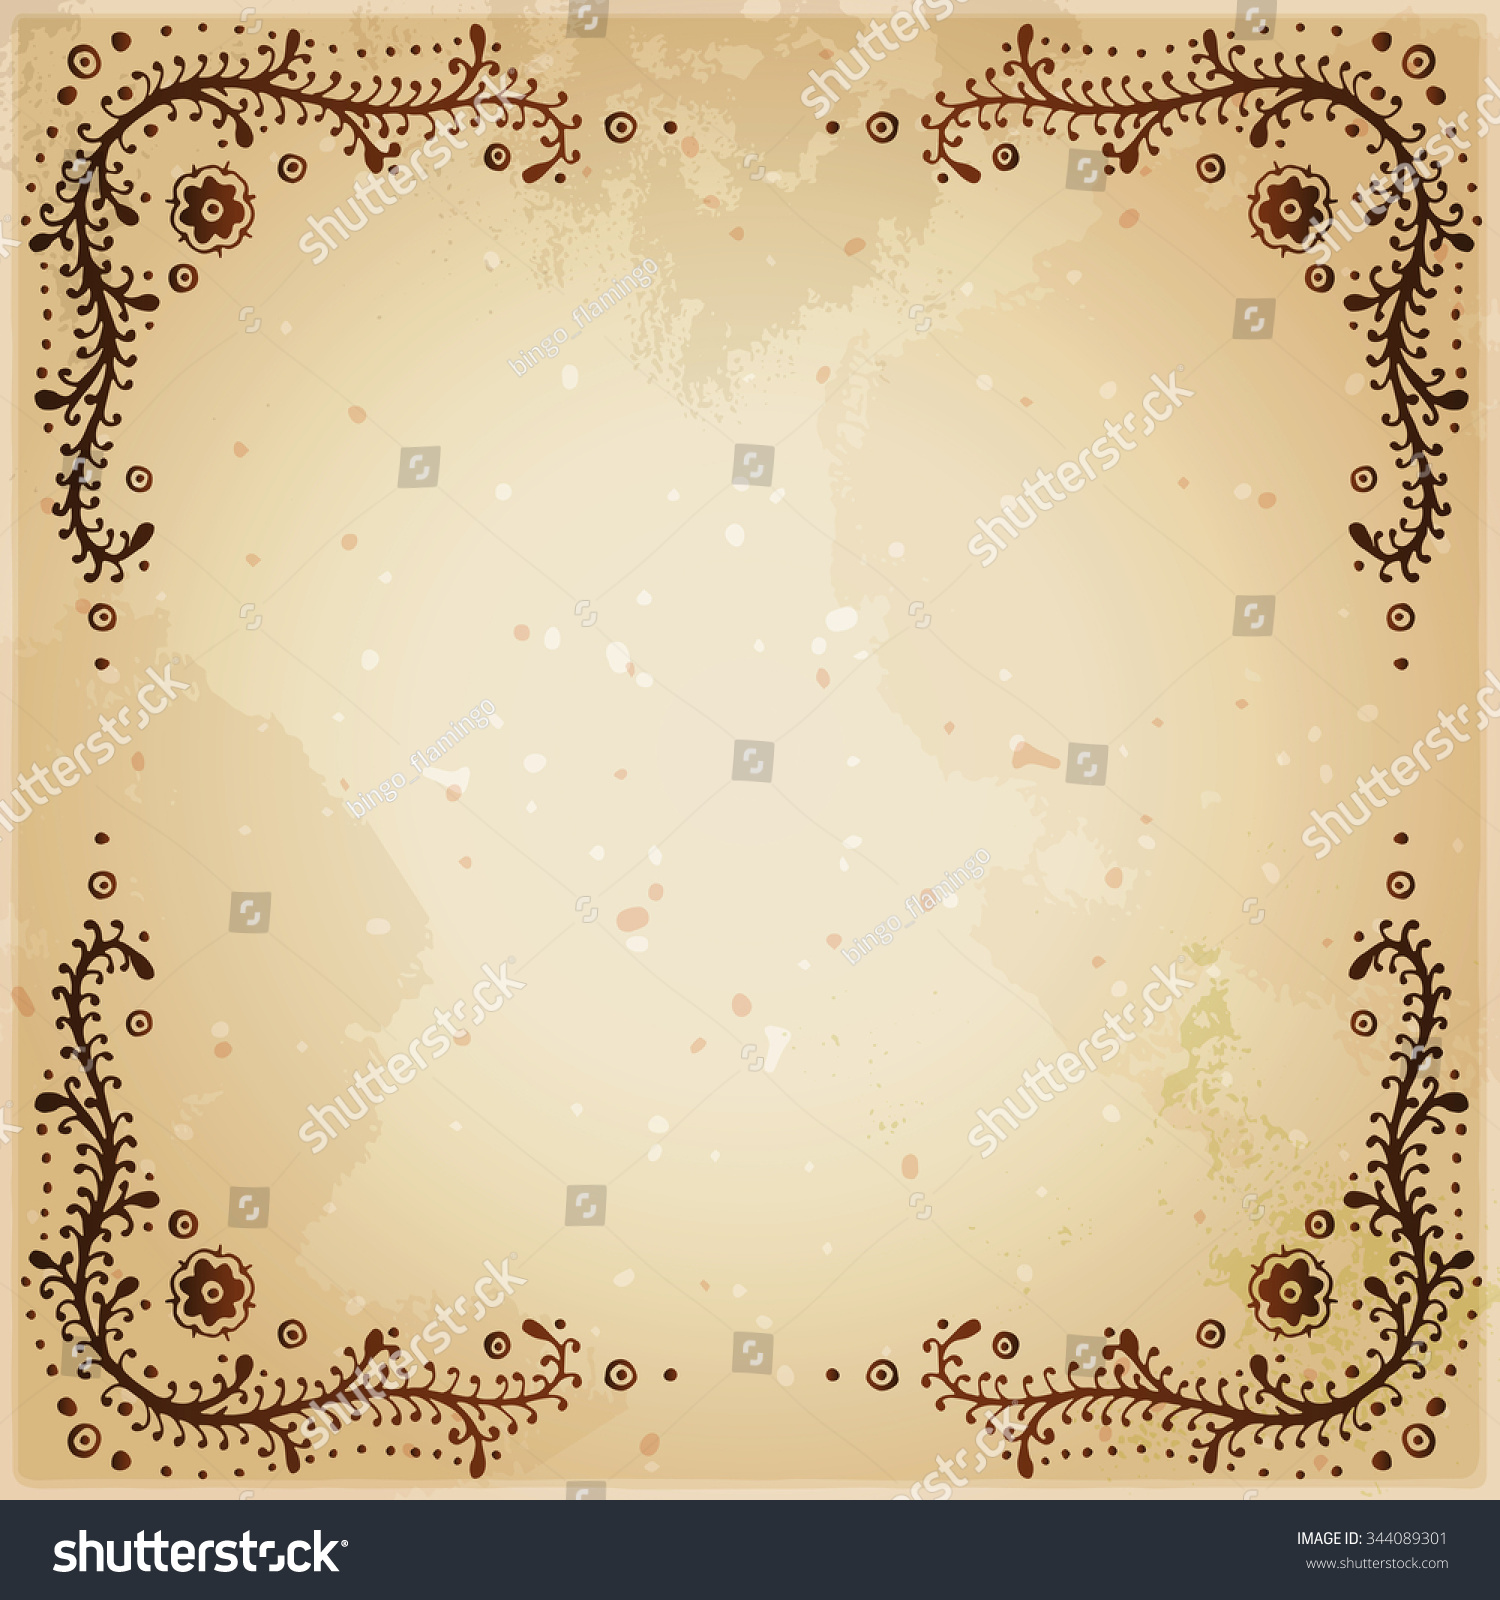 Indian Ethnic Henna Tattoo Framed Background Stock Vector